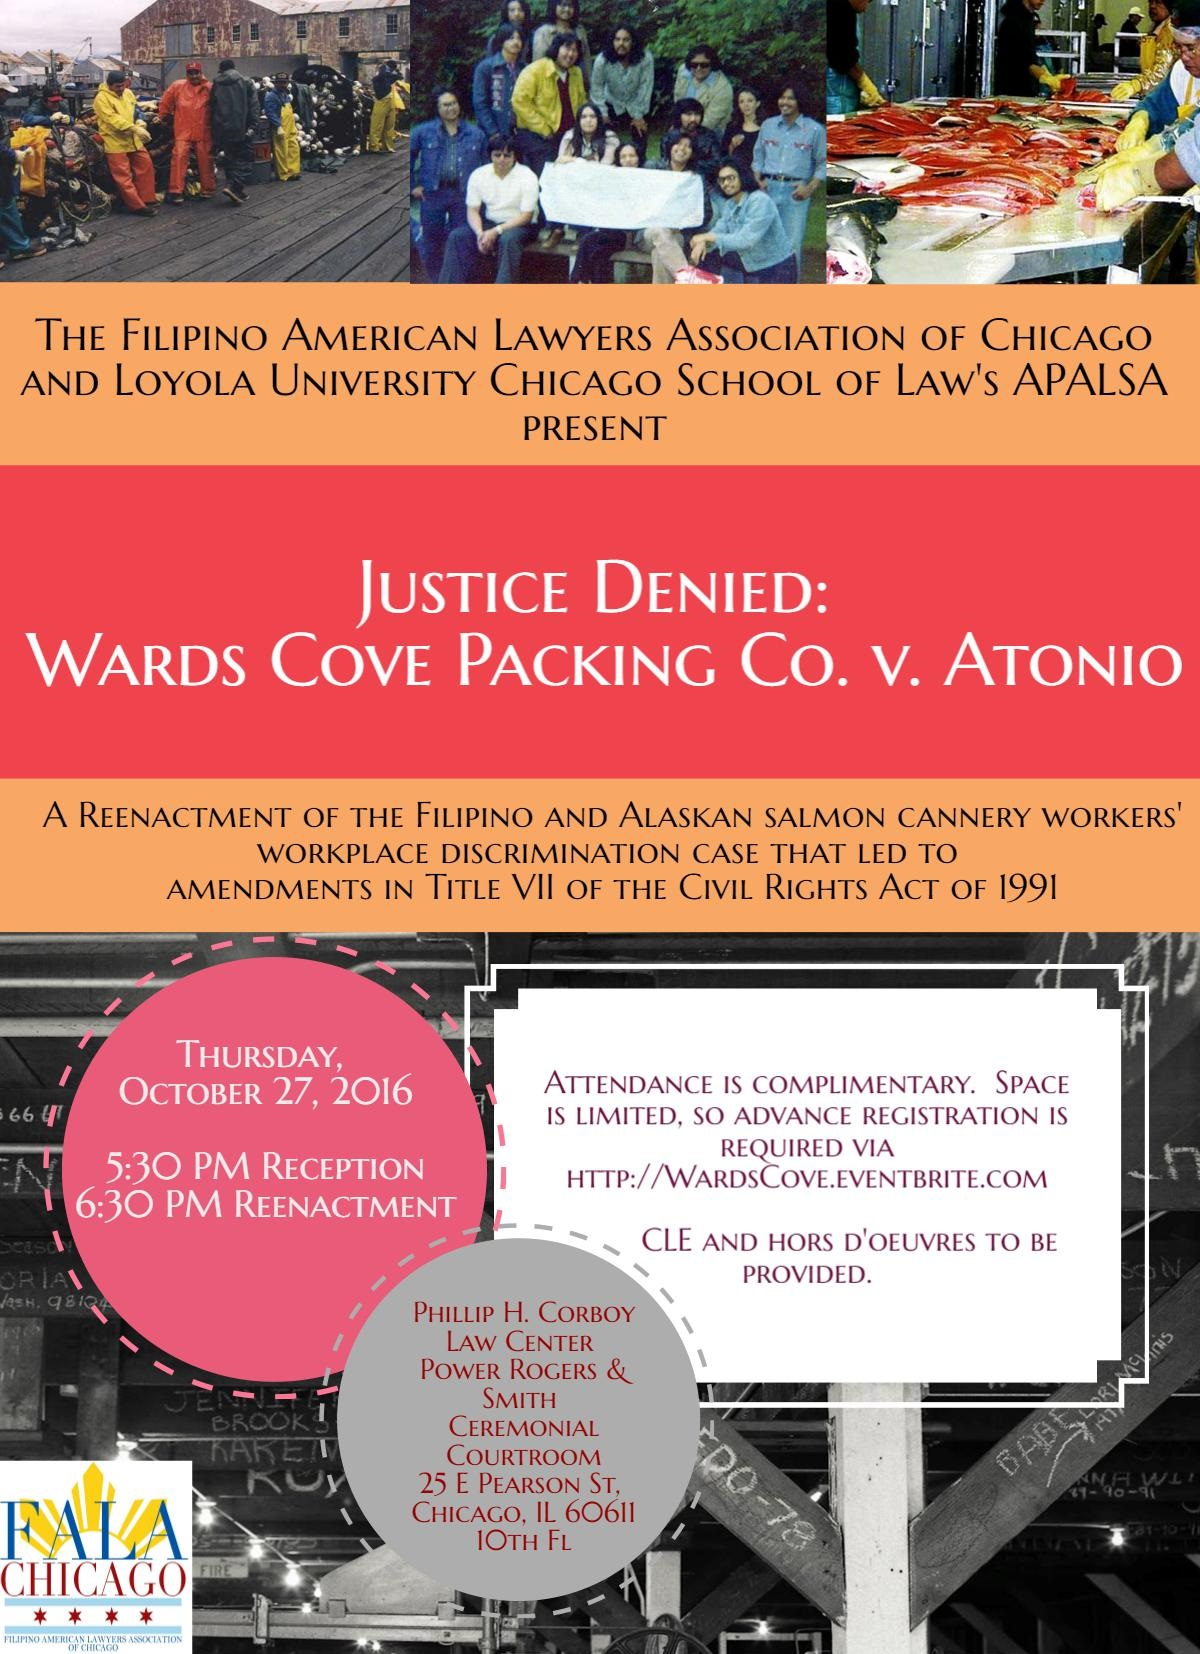 wards cove packing co v atonio